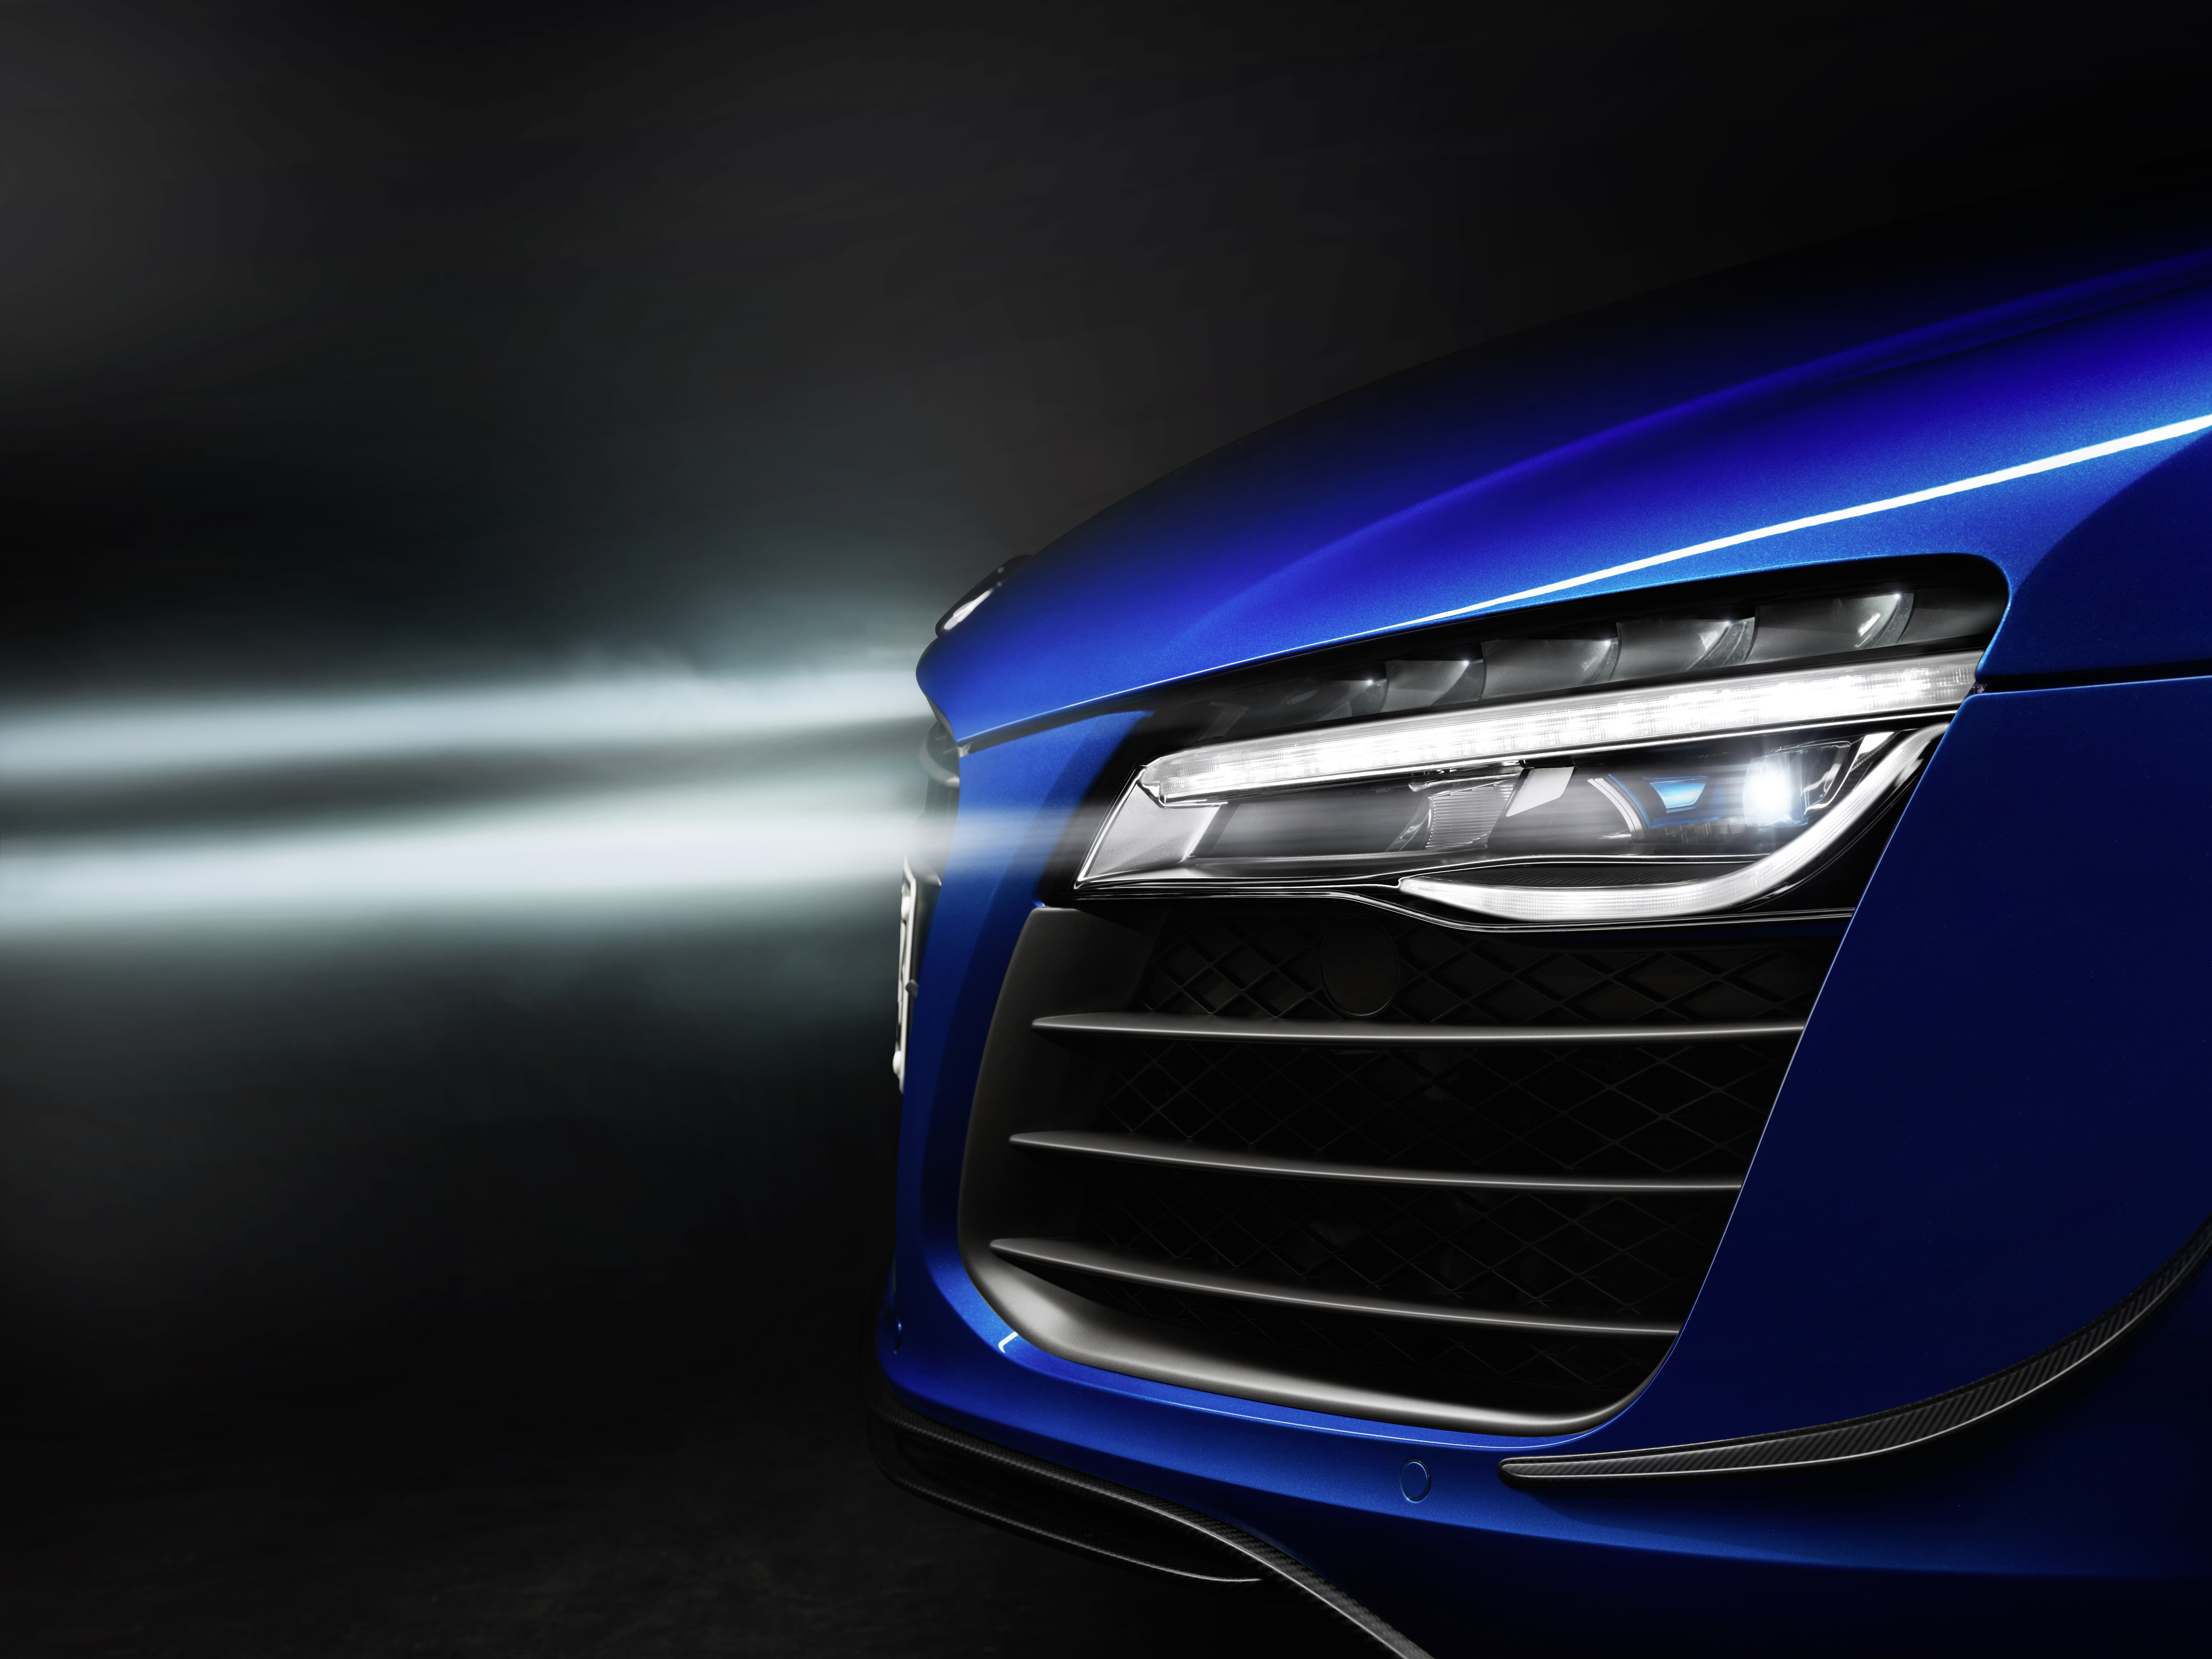 Dch Audi Oxnard Dch Audi Oxnard Audi Lights The Way To The Future With Laser